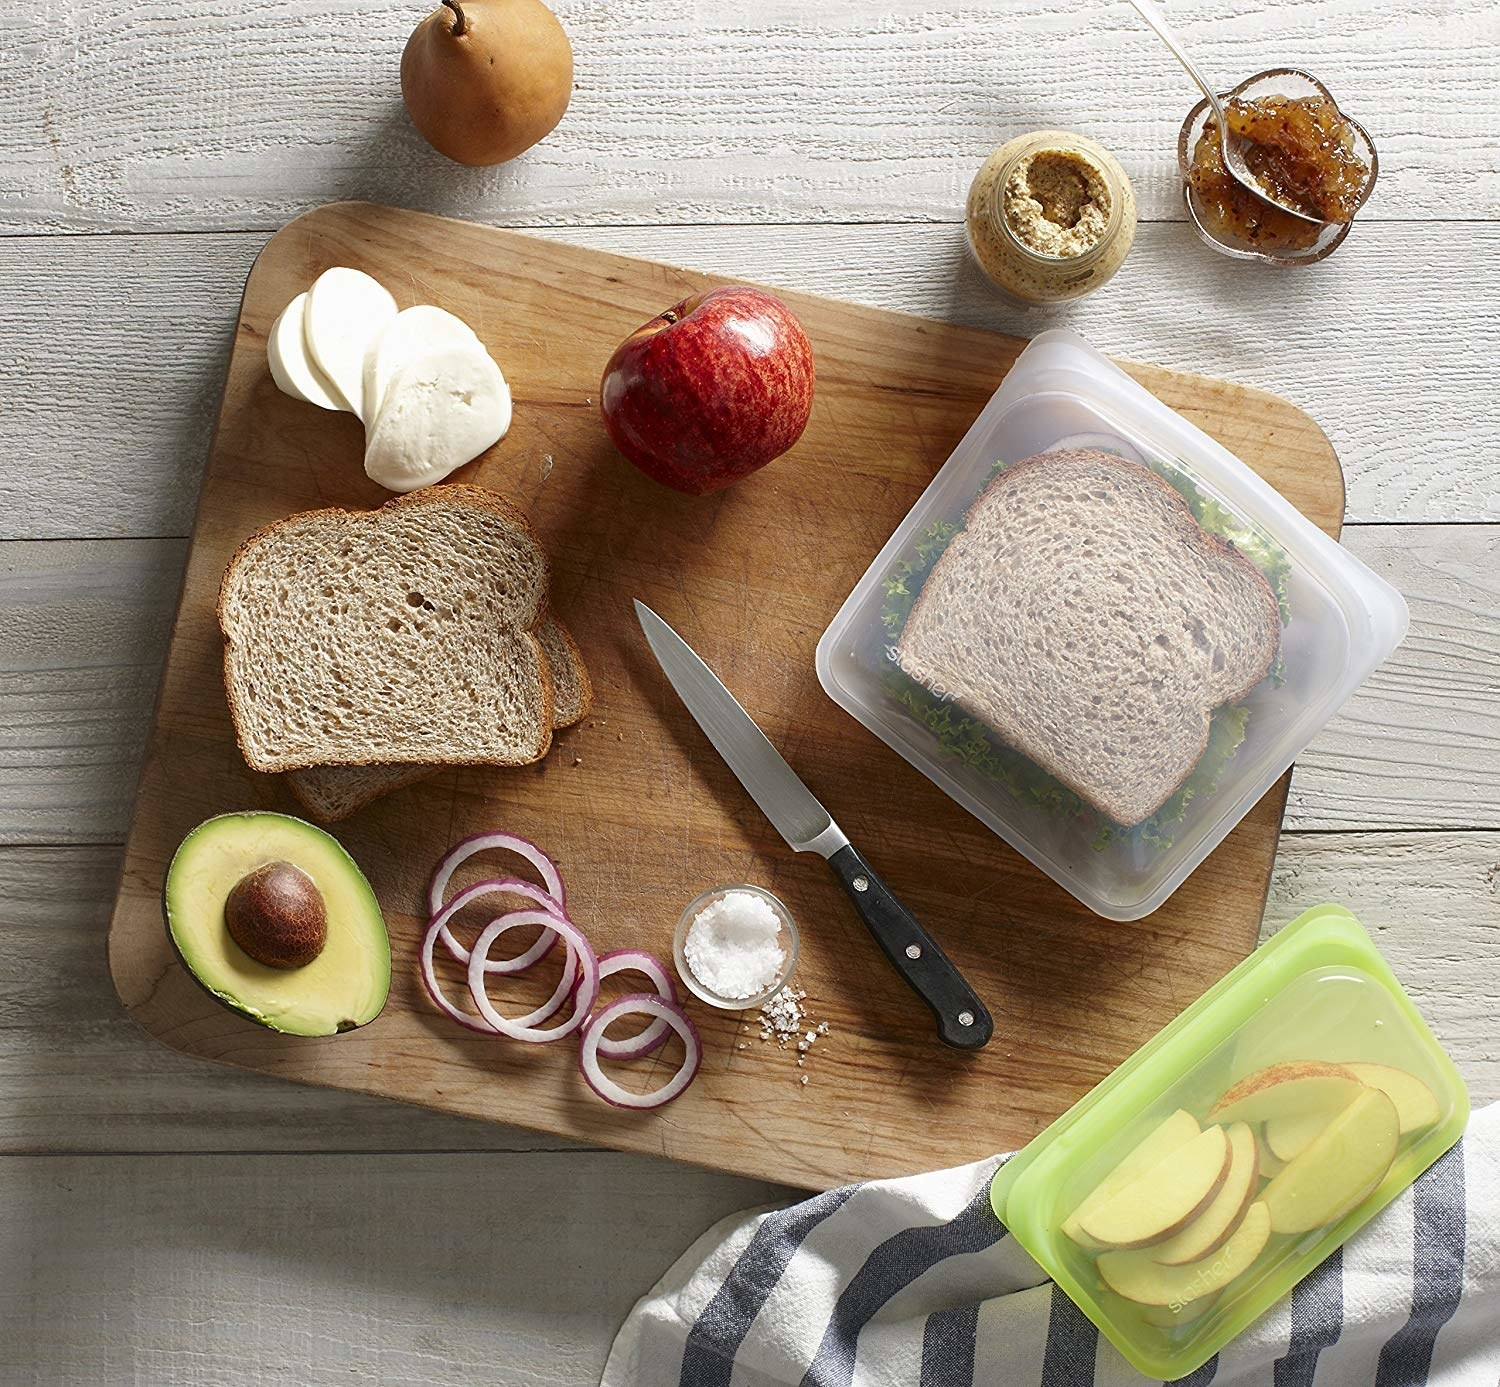 Sliced apples in the snack-sized bag, a sandwich in the, well, sandwich-bread size